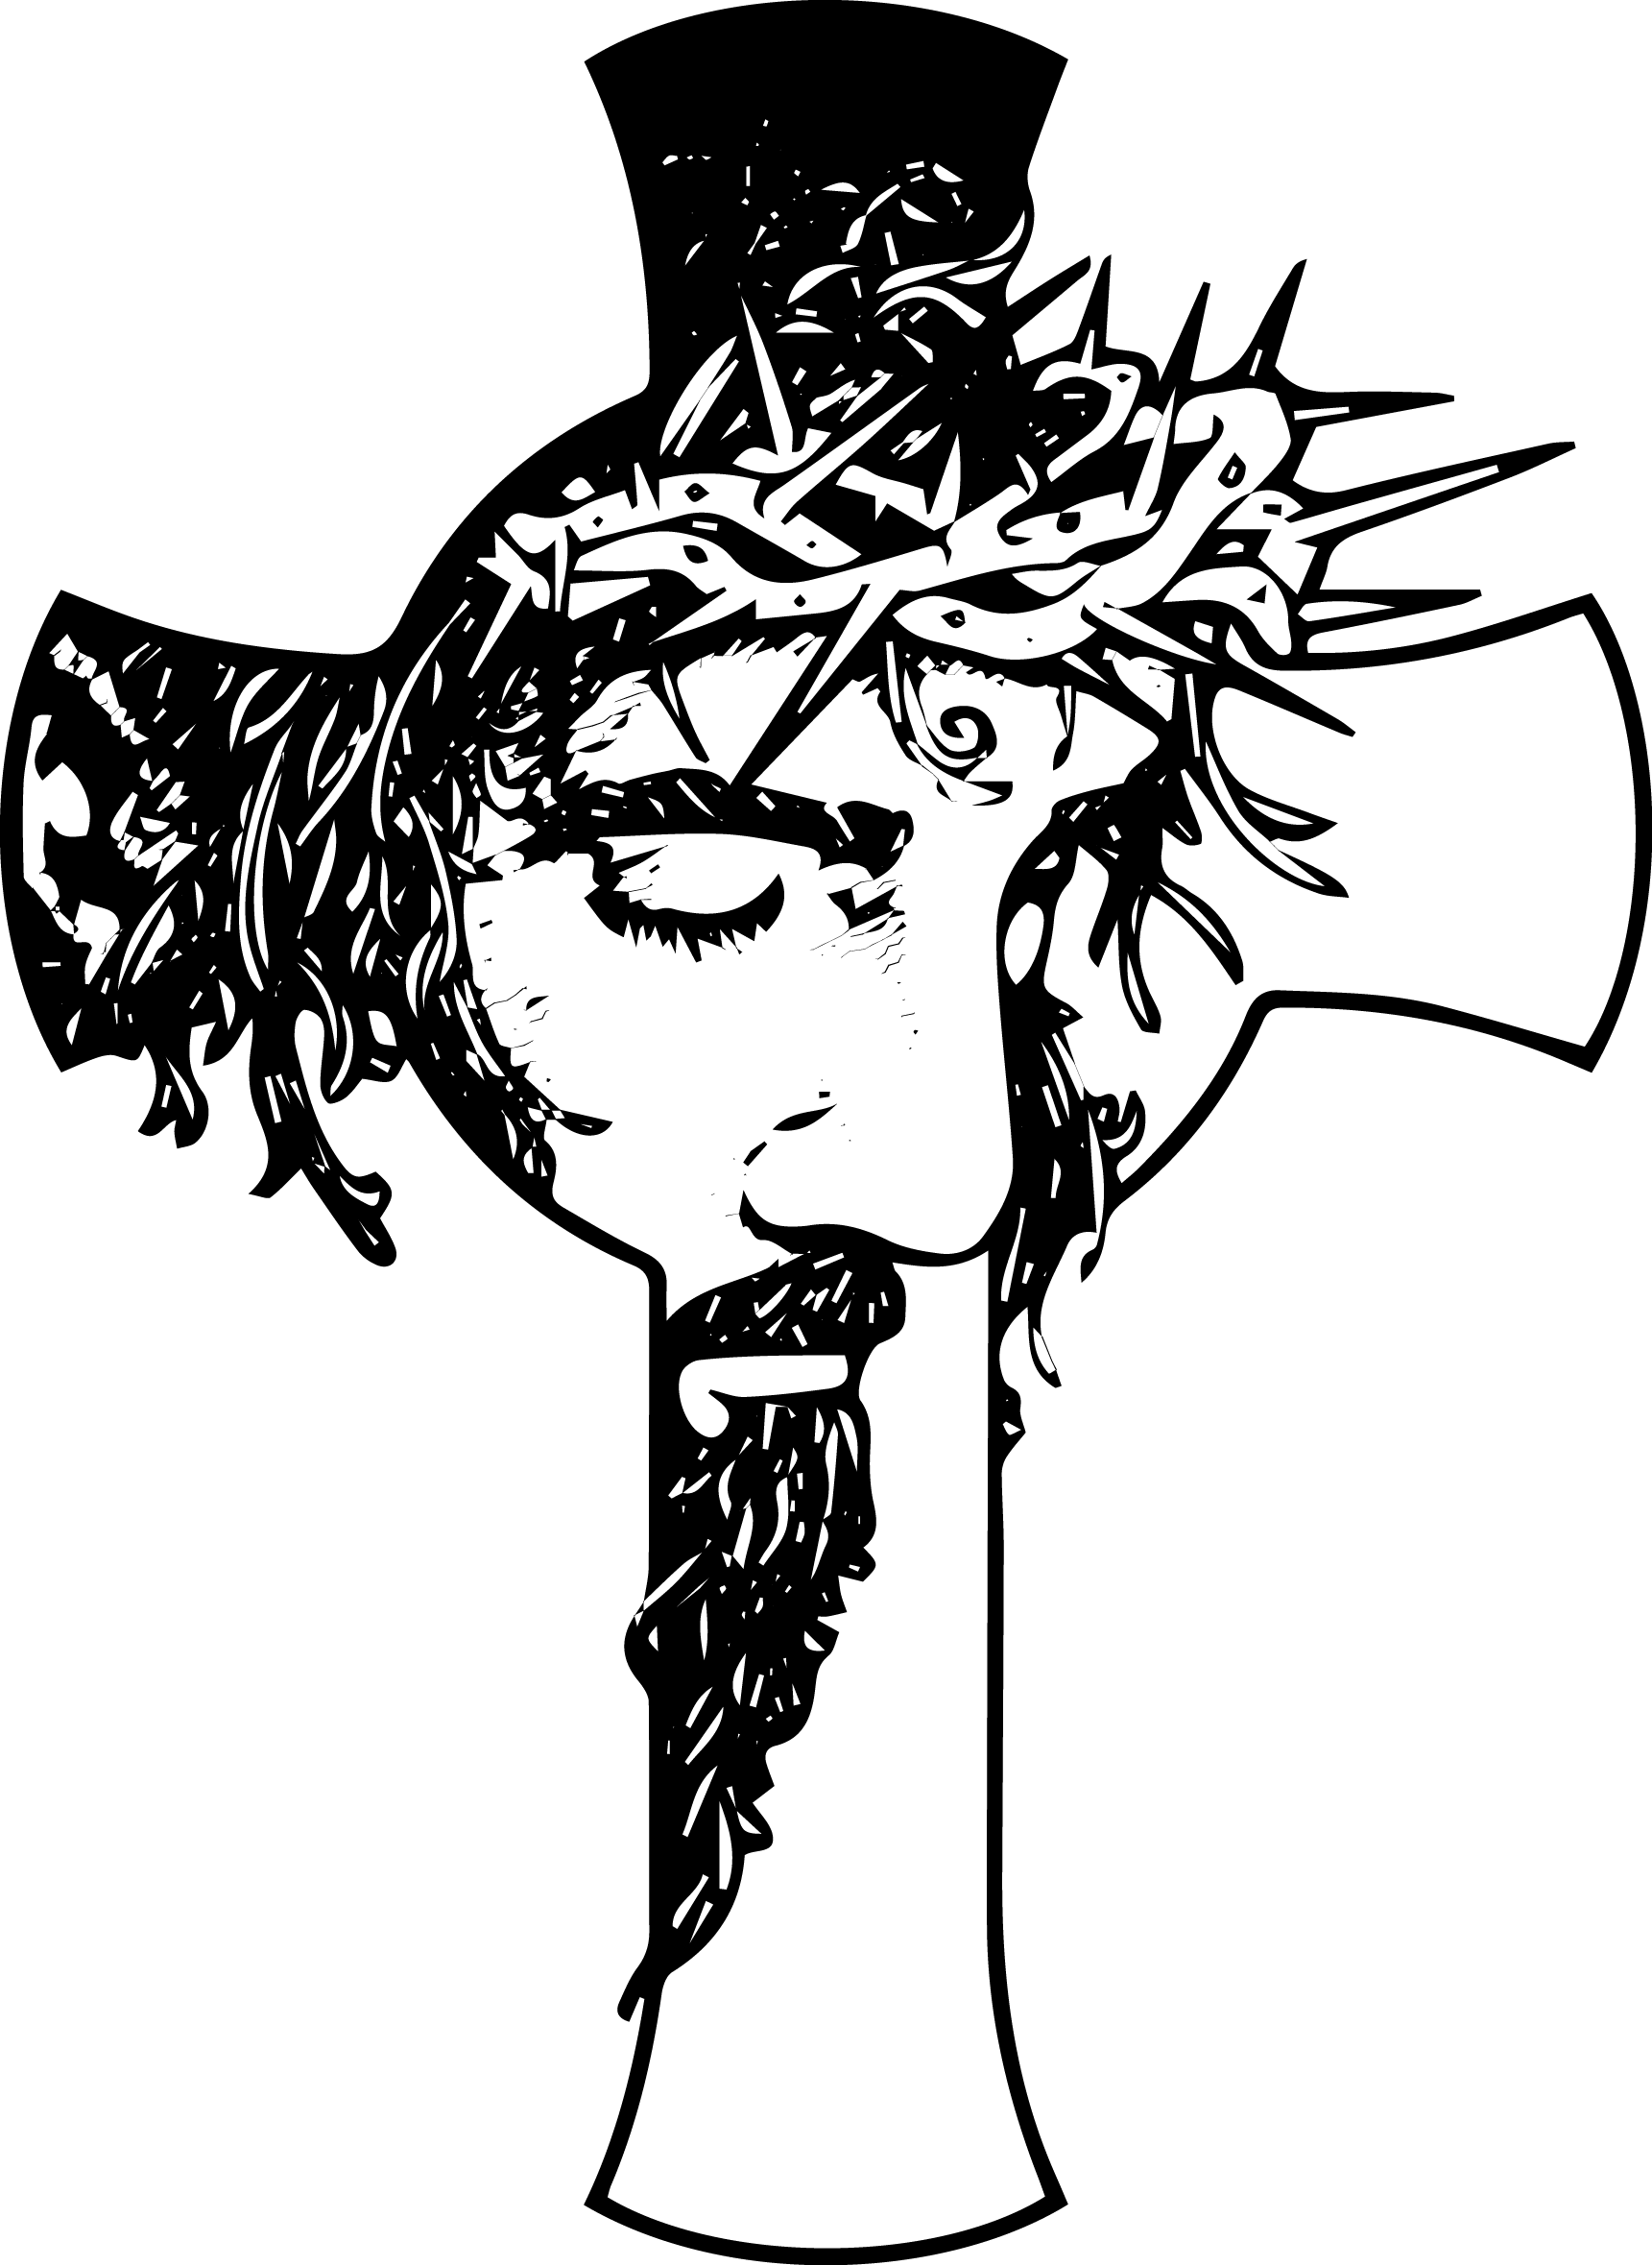 Free Healing Cross Cliparts Download Free Clip Art Free